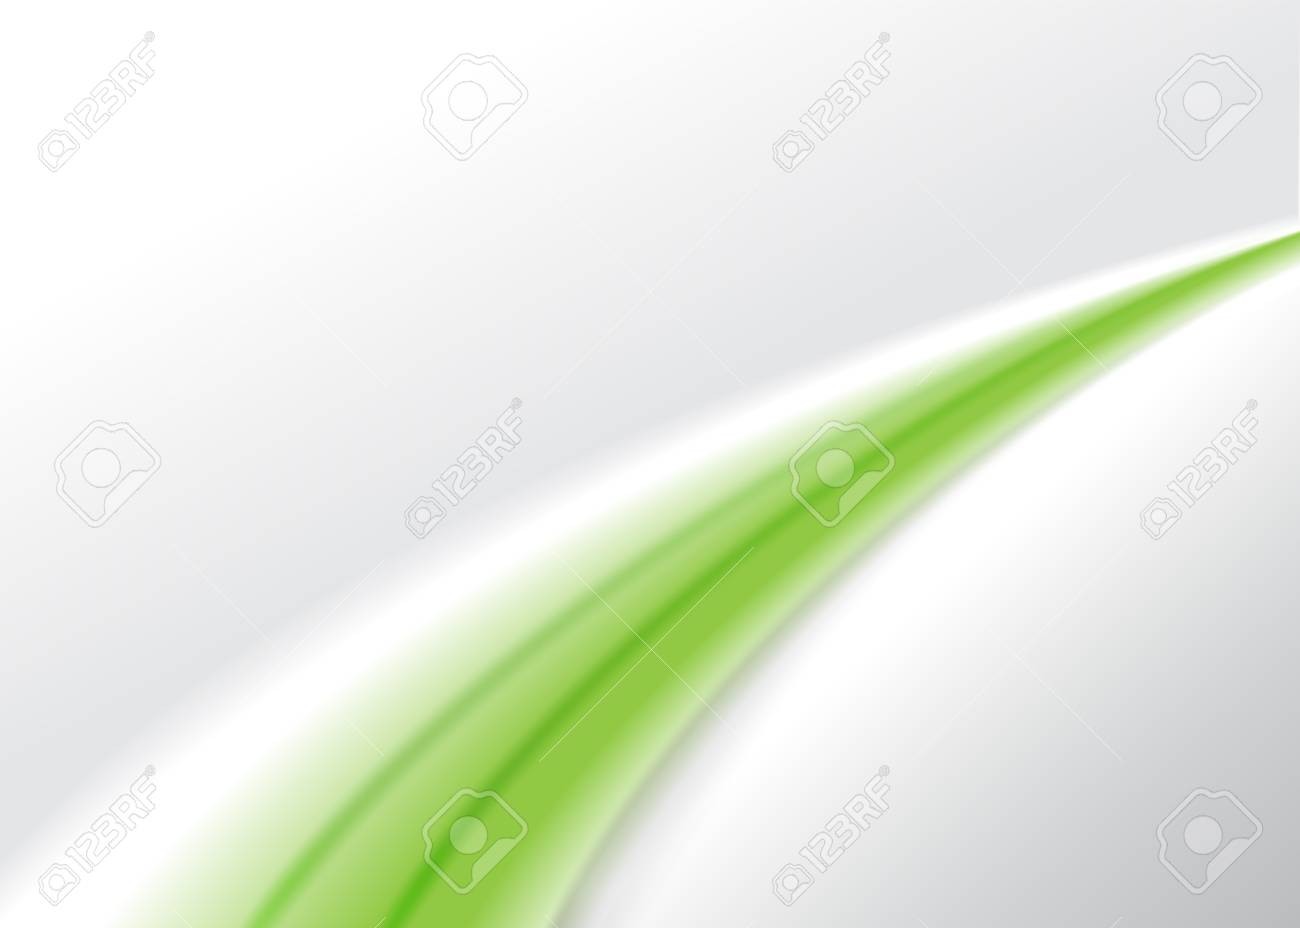 Abstract green wave background. Stock Vector - 12486496